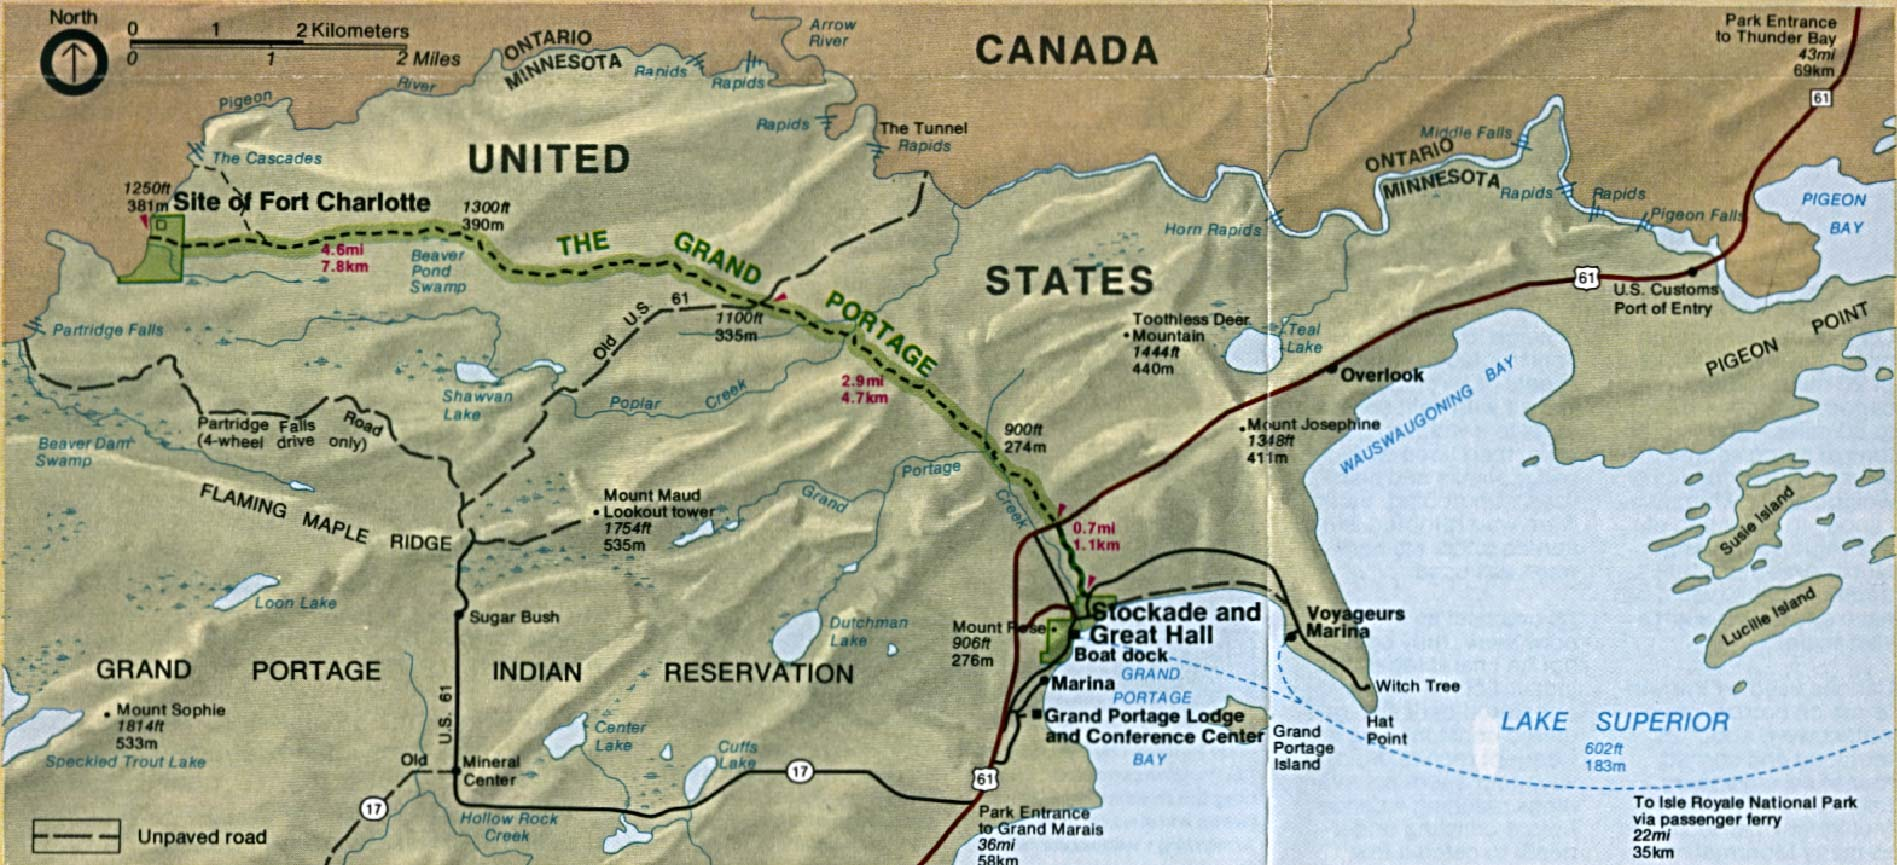 Area Map of Grand Portage National Monument, Minnesota, United States